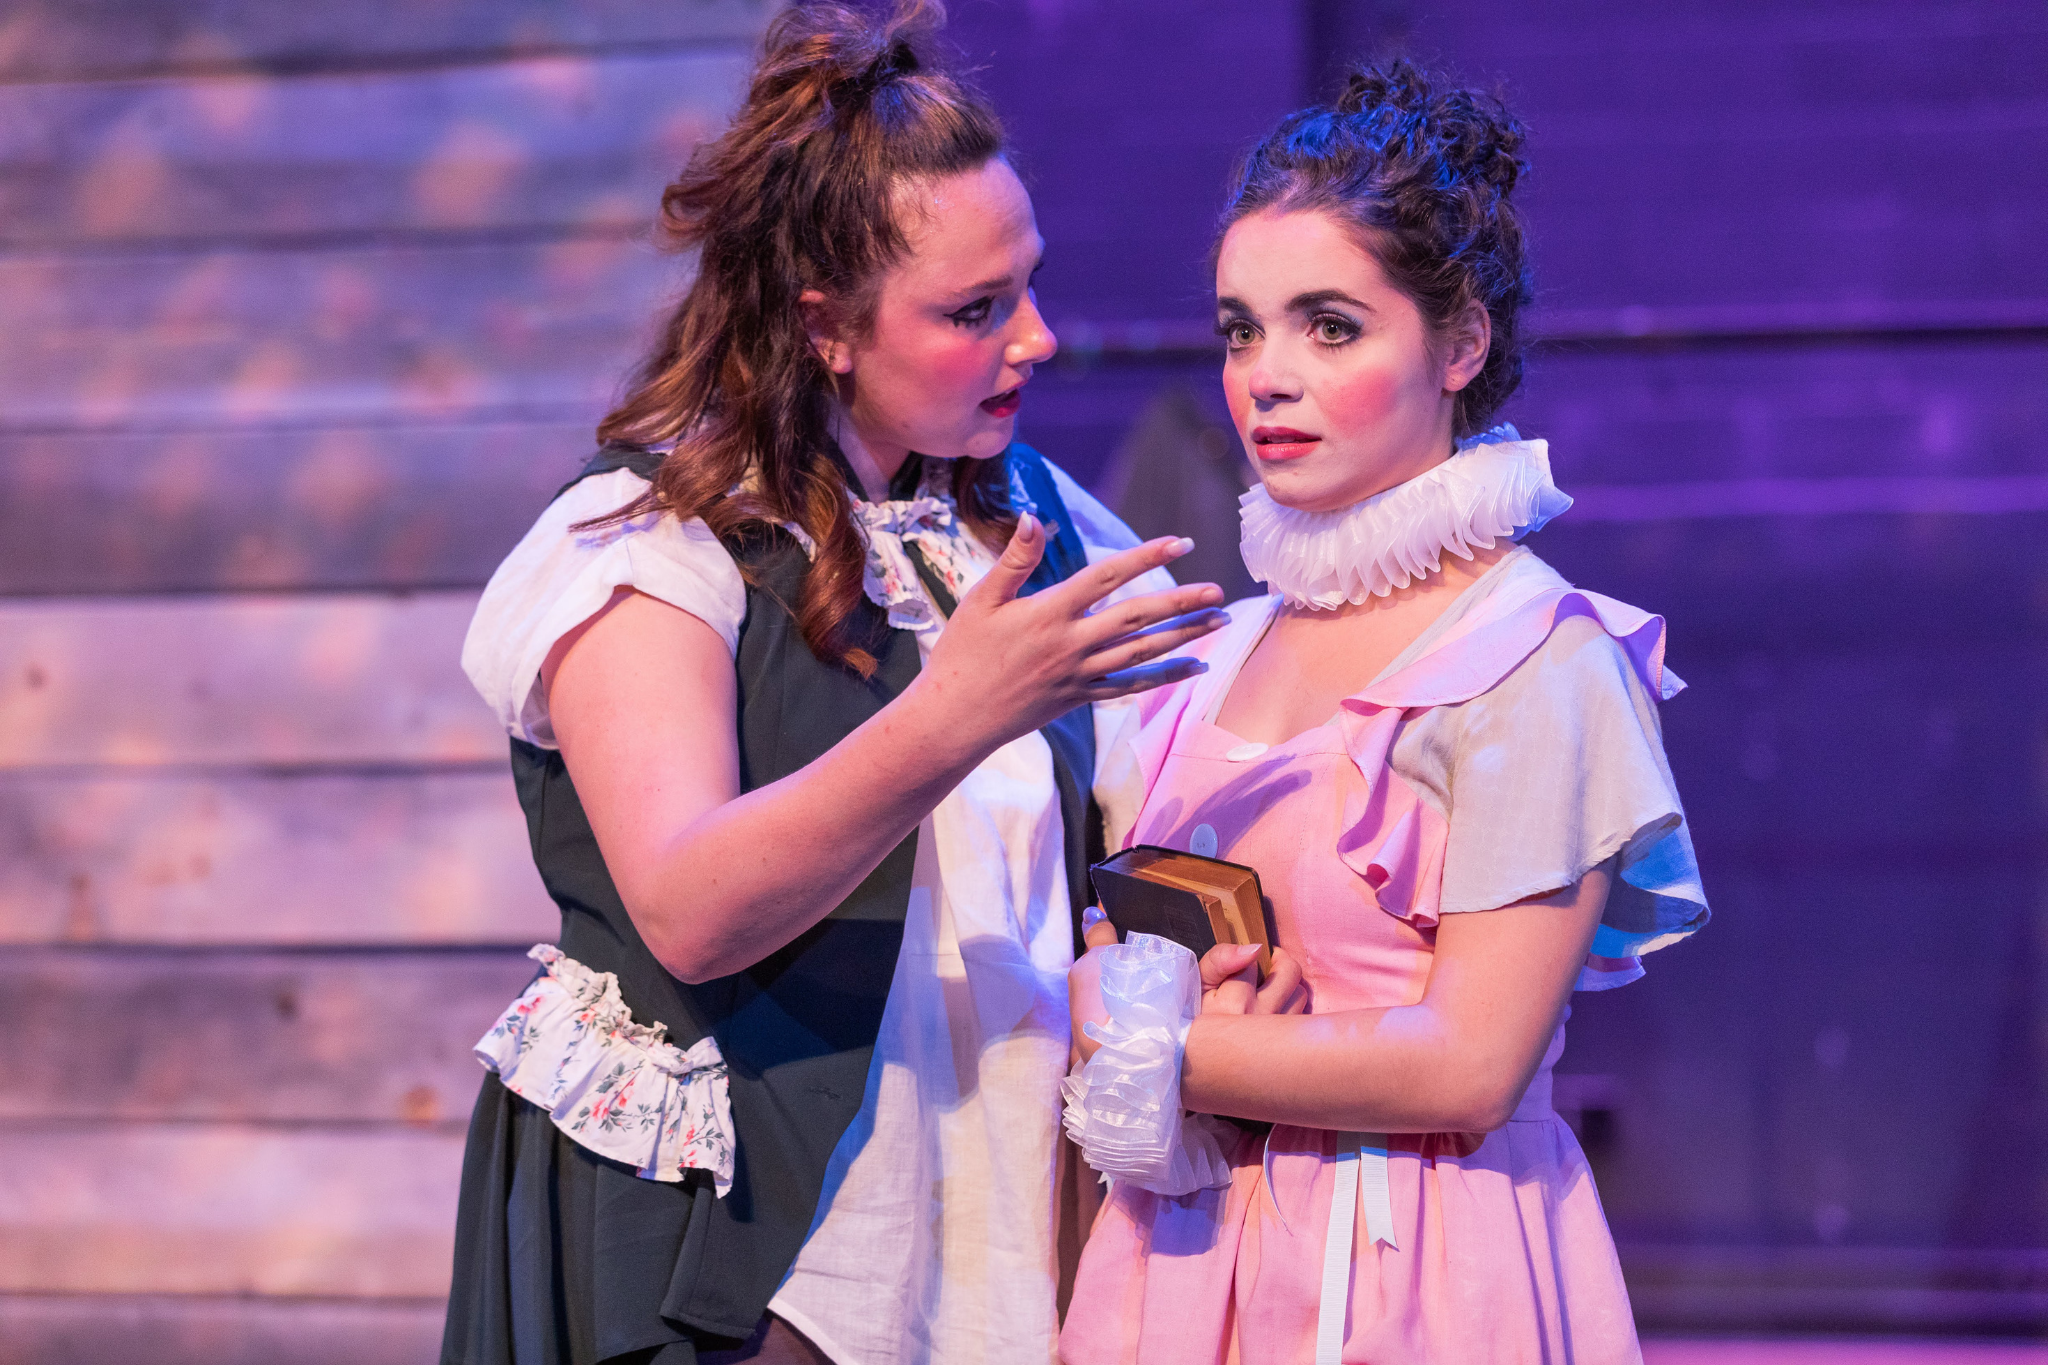 Sarah Vasilevsky (Lady Capulet) and Erika Anclade (Juliet) in Romeo & Juliet, CSC2, 2019-Photo by Nile Hawver